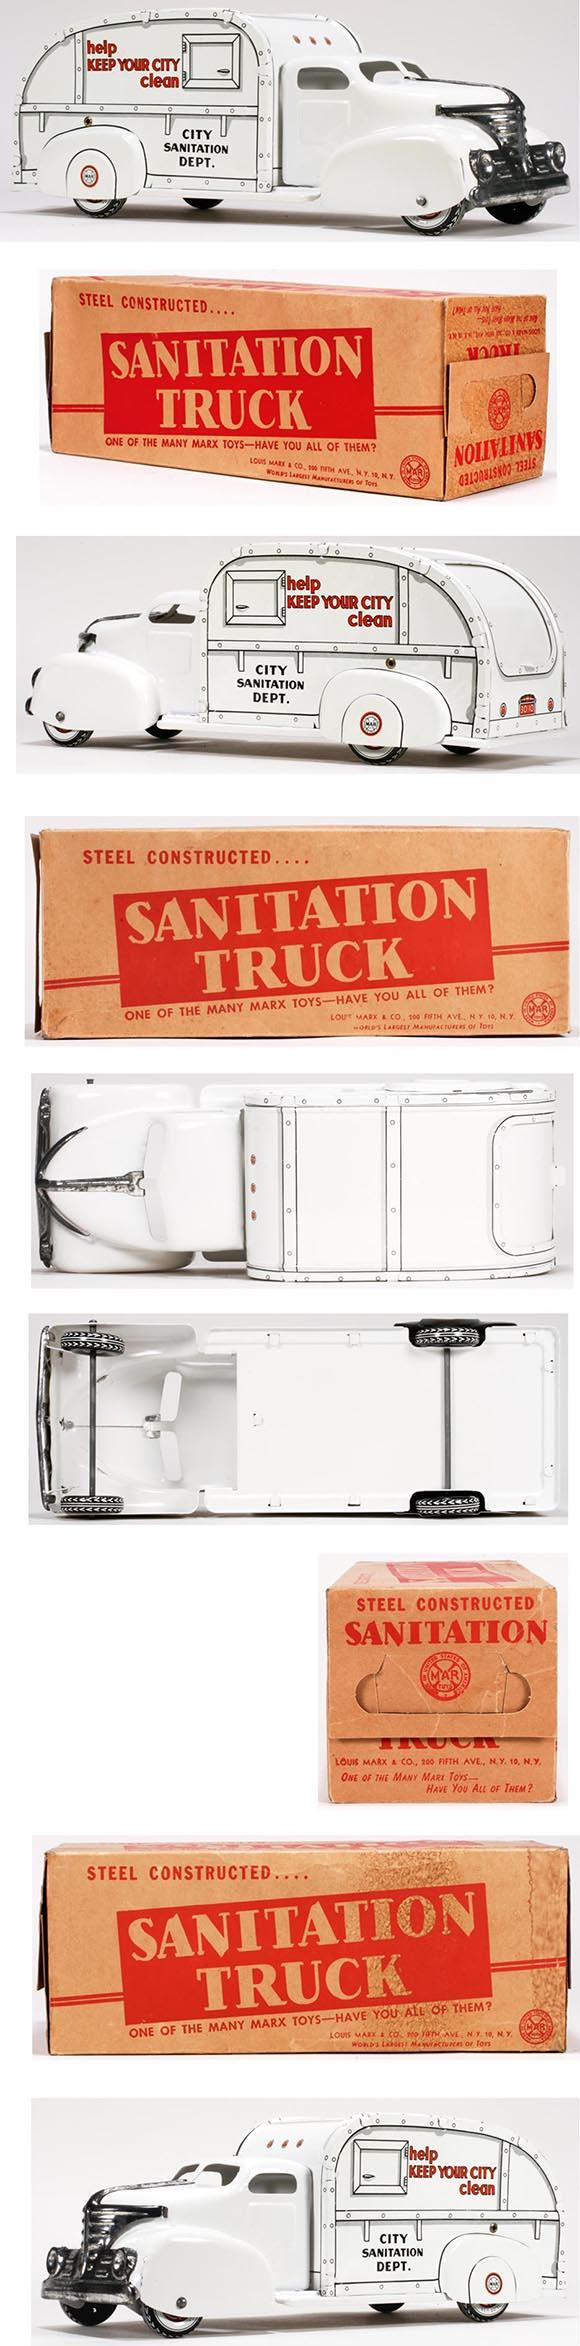 1951 Marx, City Sanitation Truck in Original Box